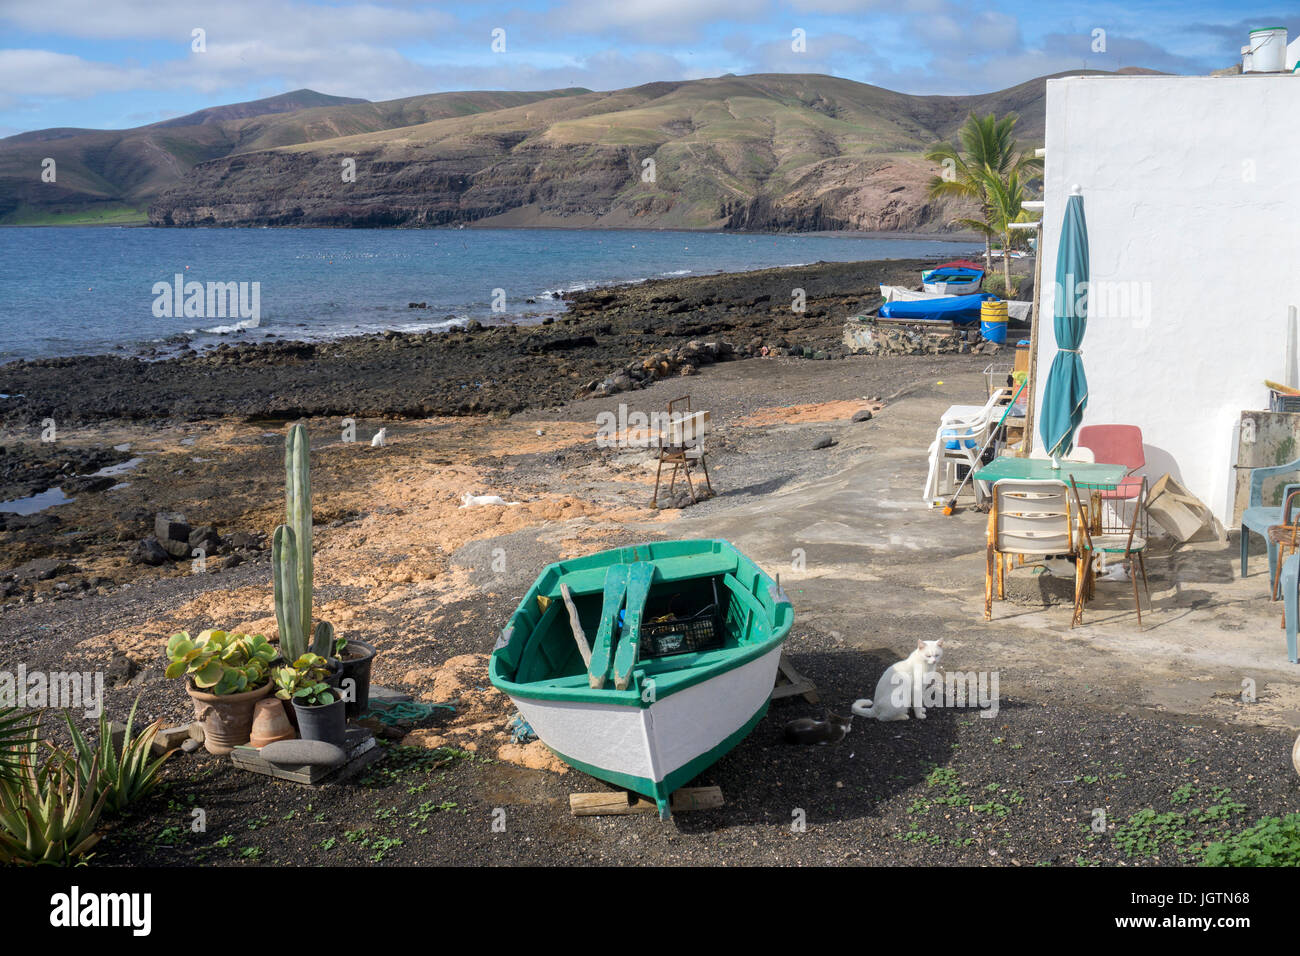 Fishing boats at the beach of the fishing village Playa Quemada, Lanzarote island, Canary islands, Spain, Europe Stock Photo